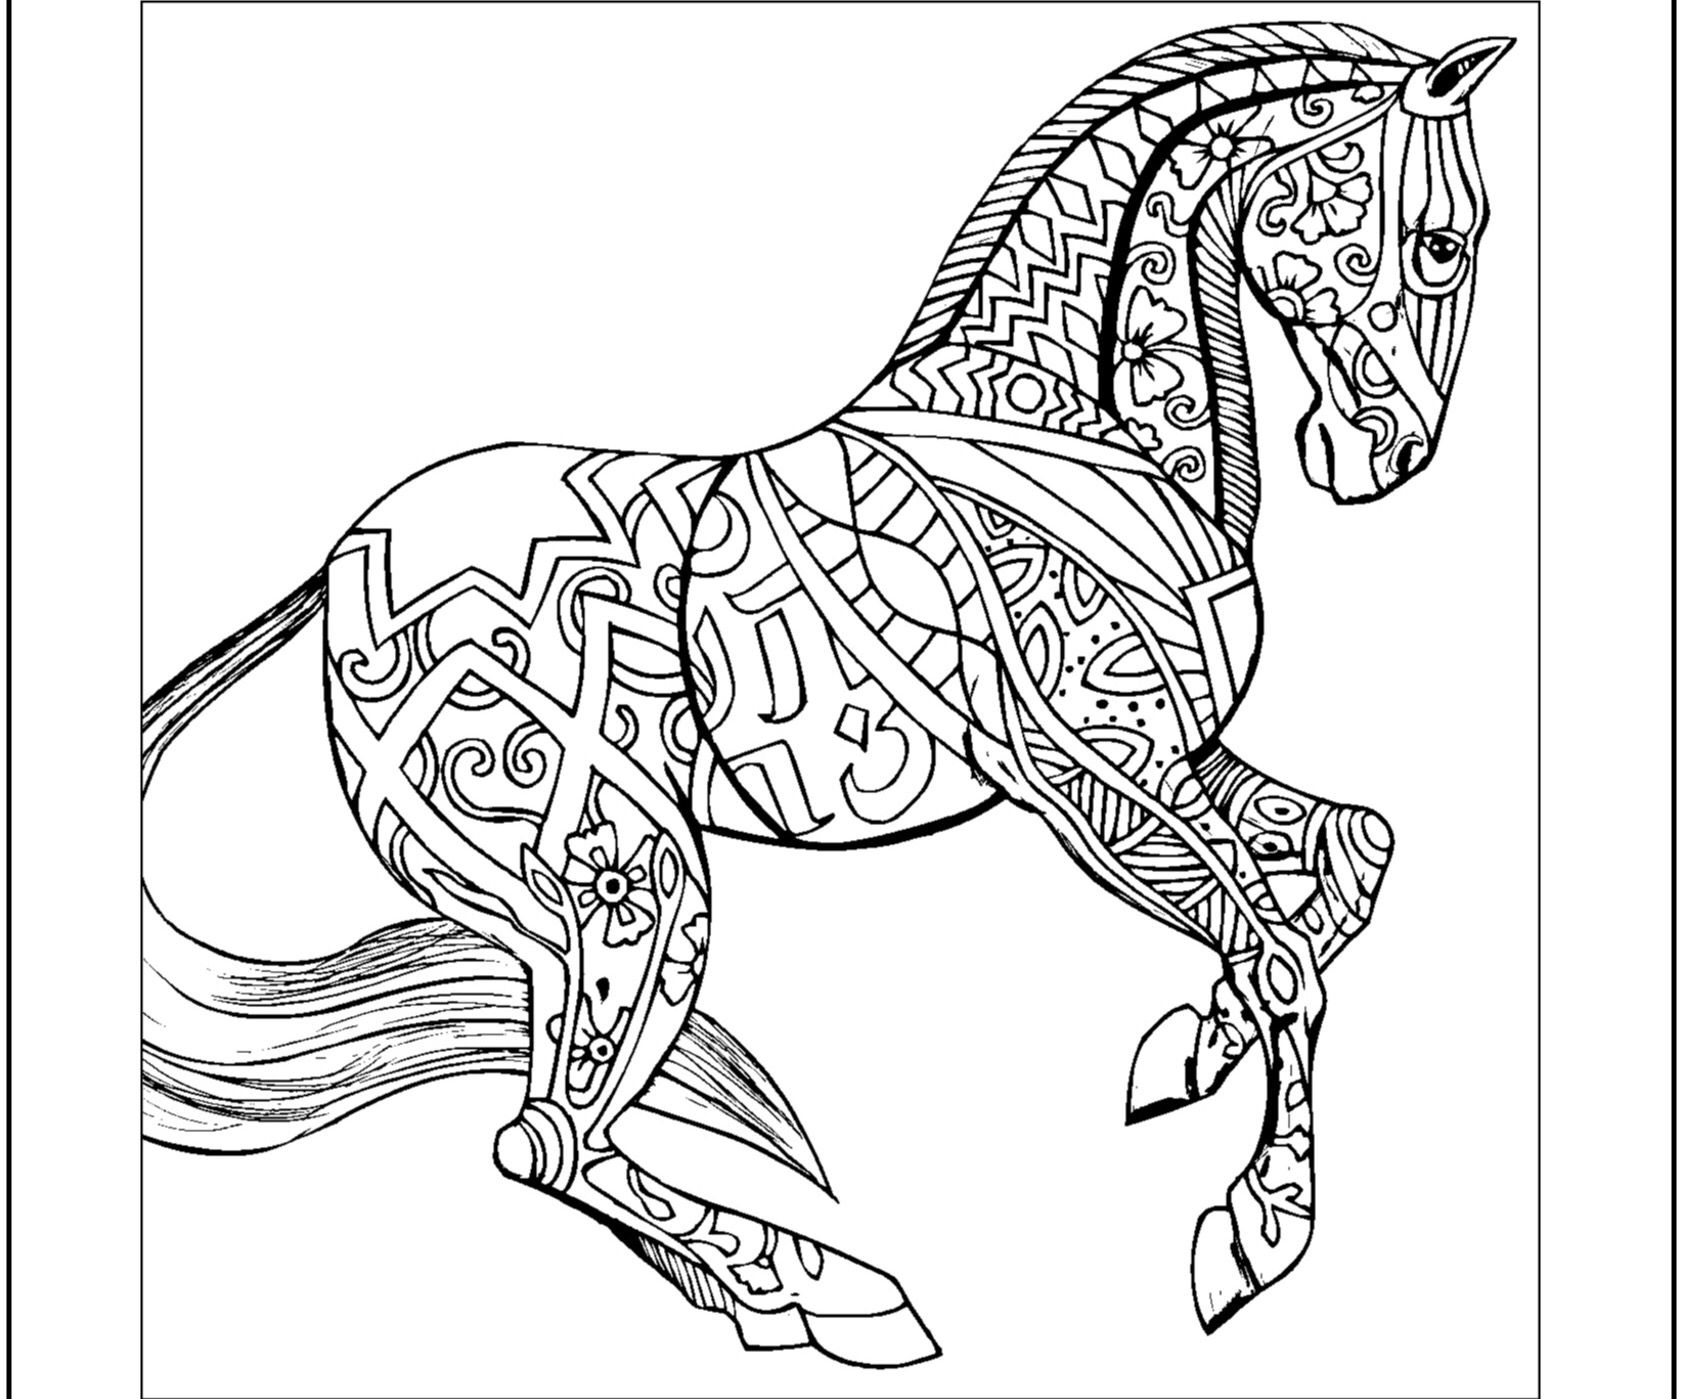 horse zentangle coloring pages zentangle horse coloring page for adults plus bonus easy coloring horse zentangle pages